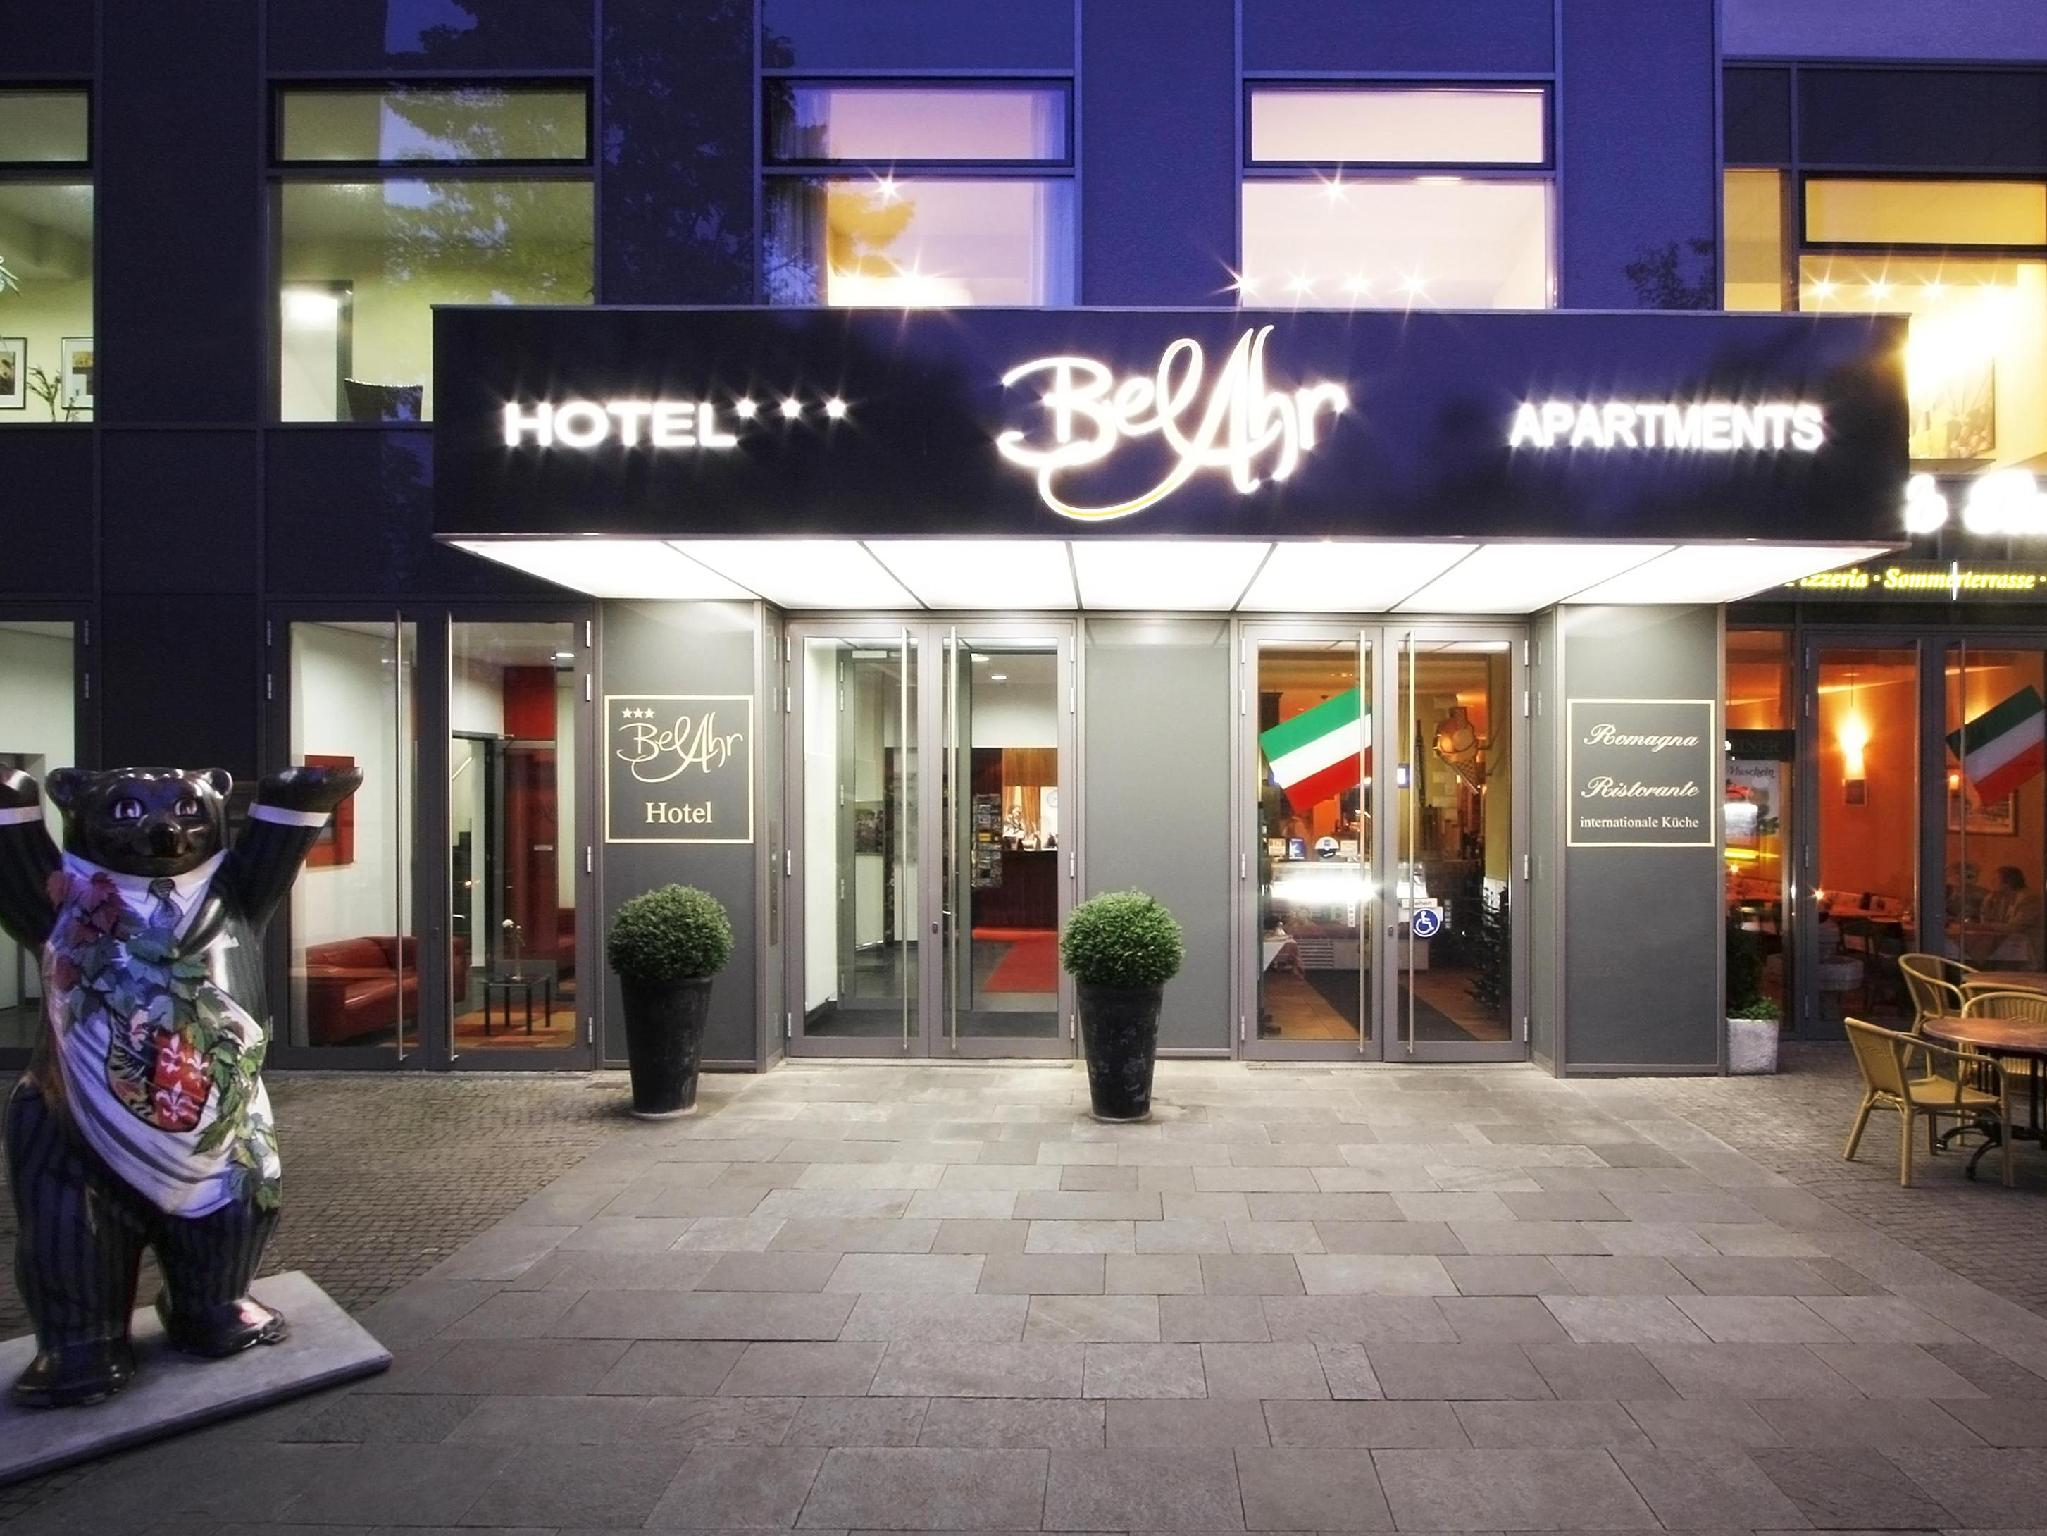 City Apartmenthotel Belahr am Potsdamer Platz Berlin